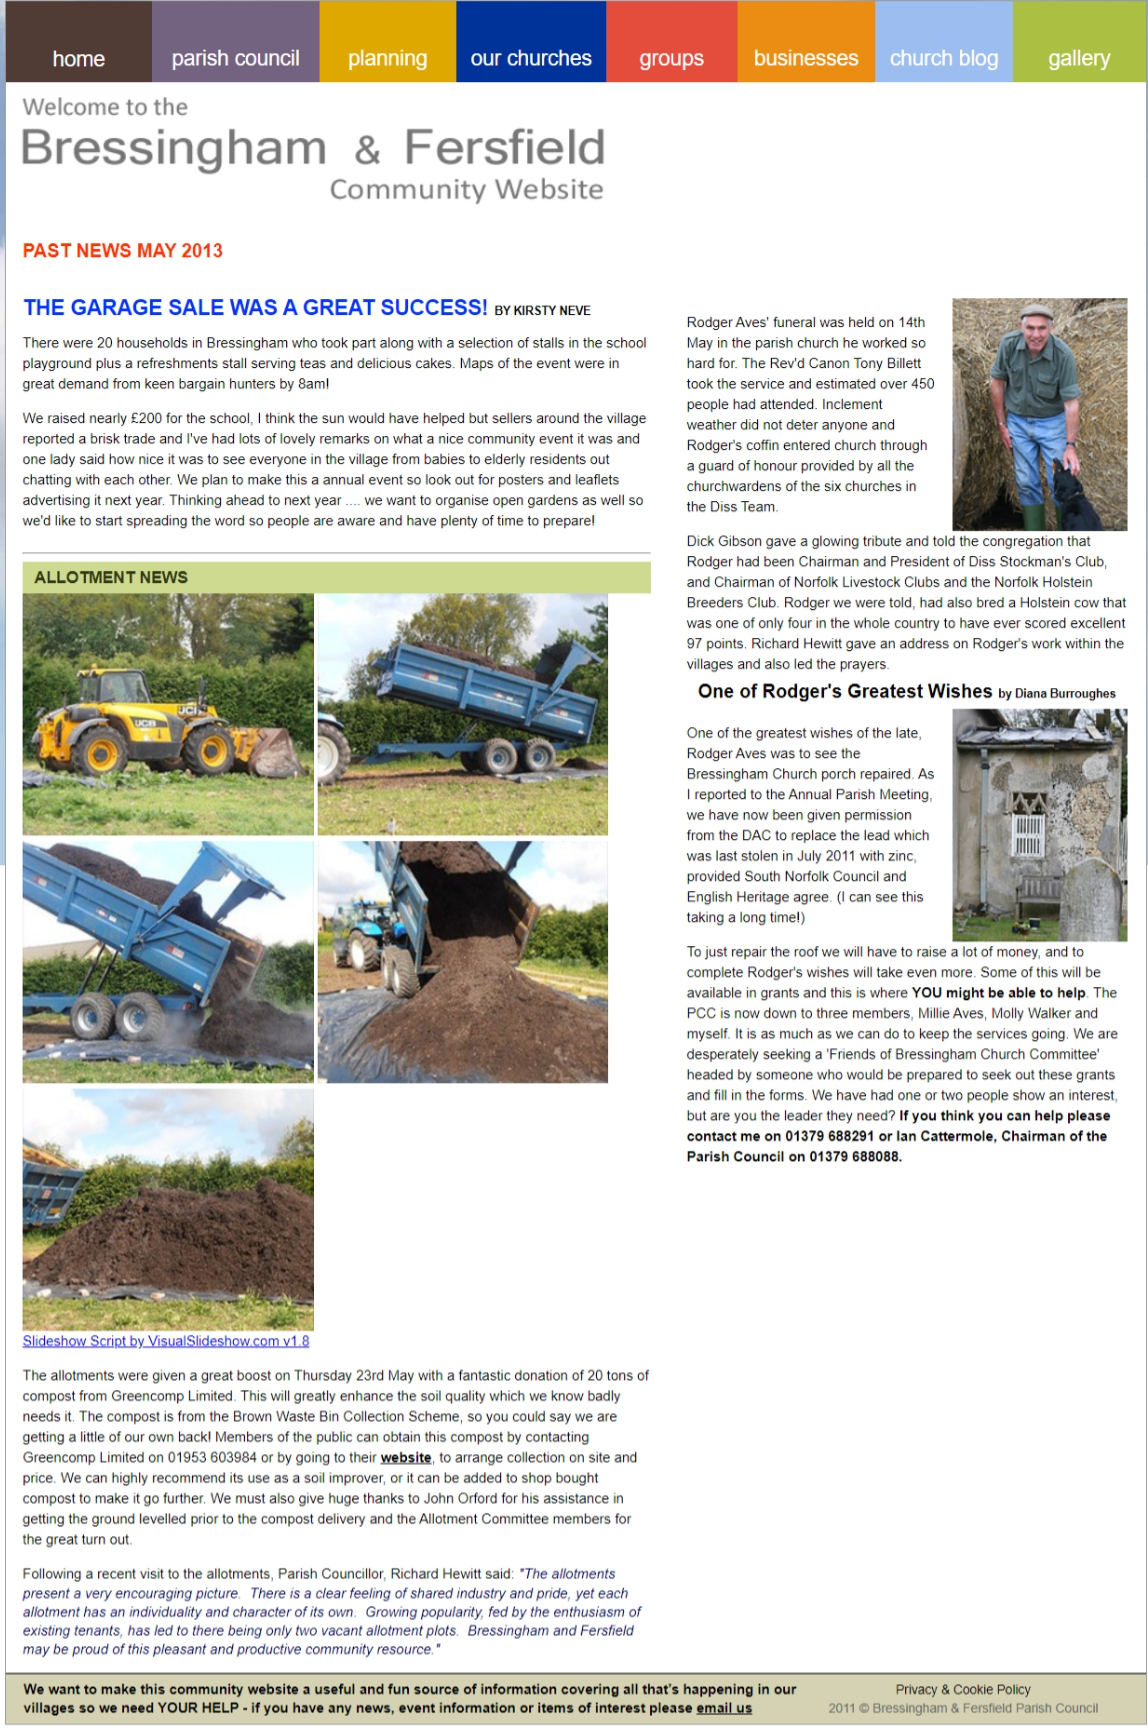 Past News May 2013 - Allotment Boost